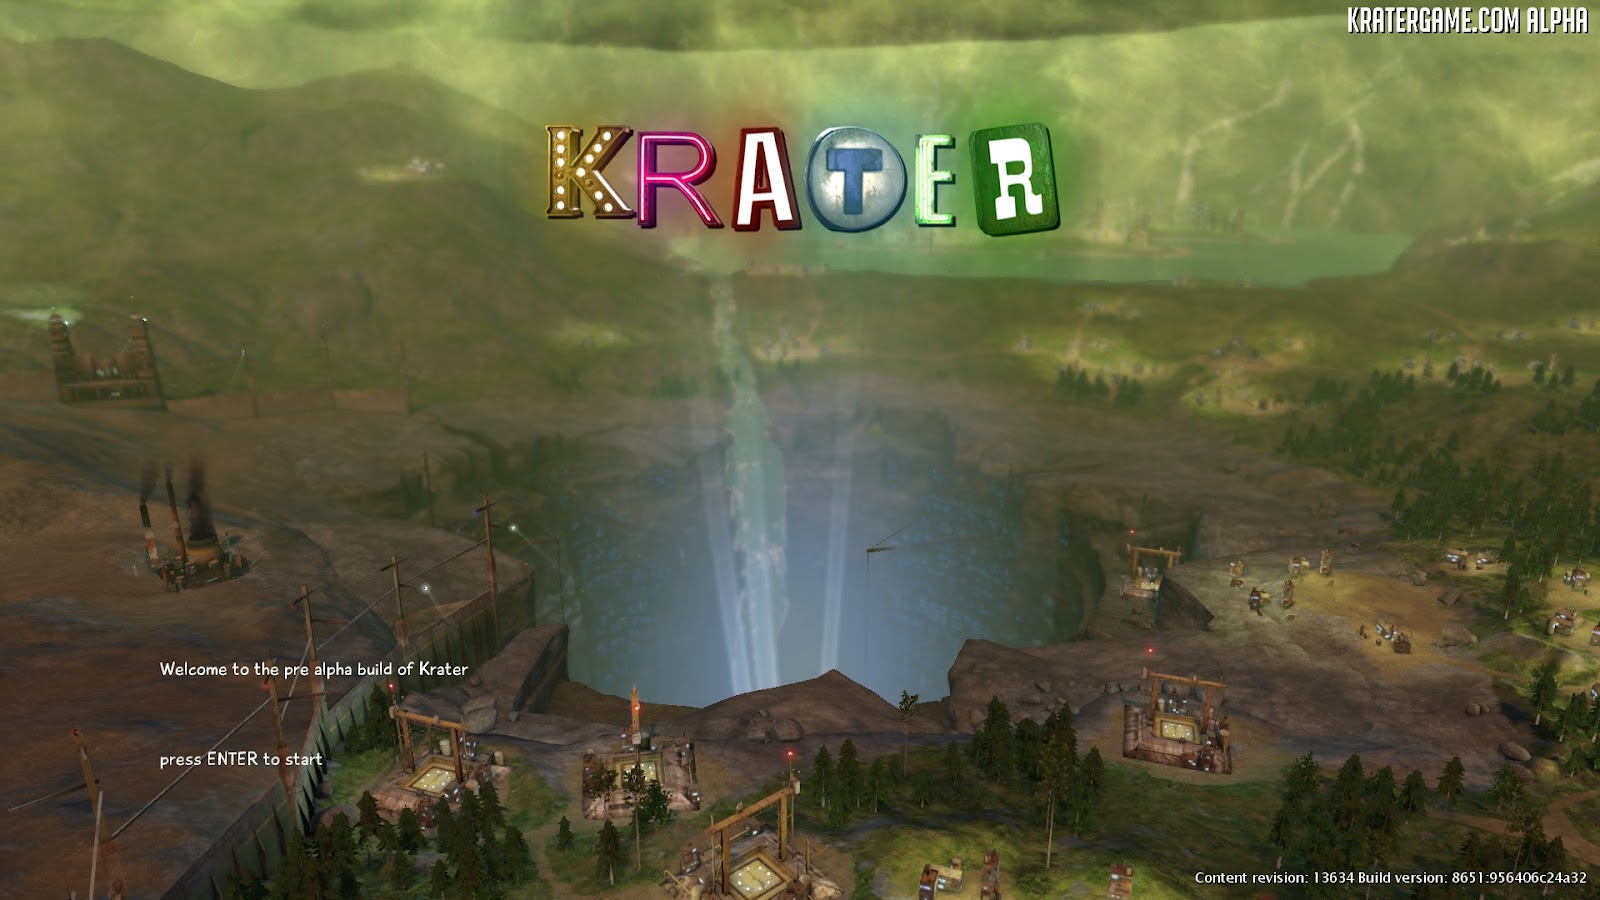 Krater 4